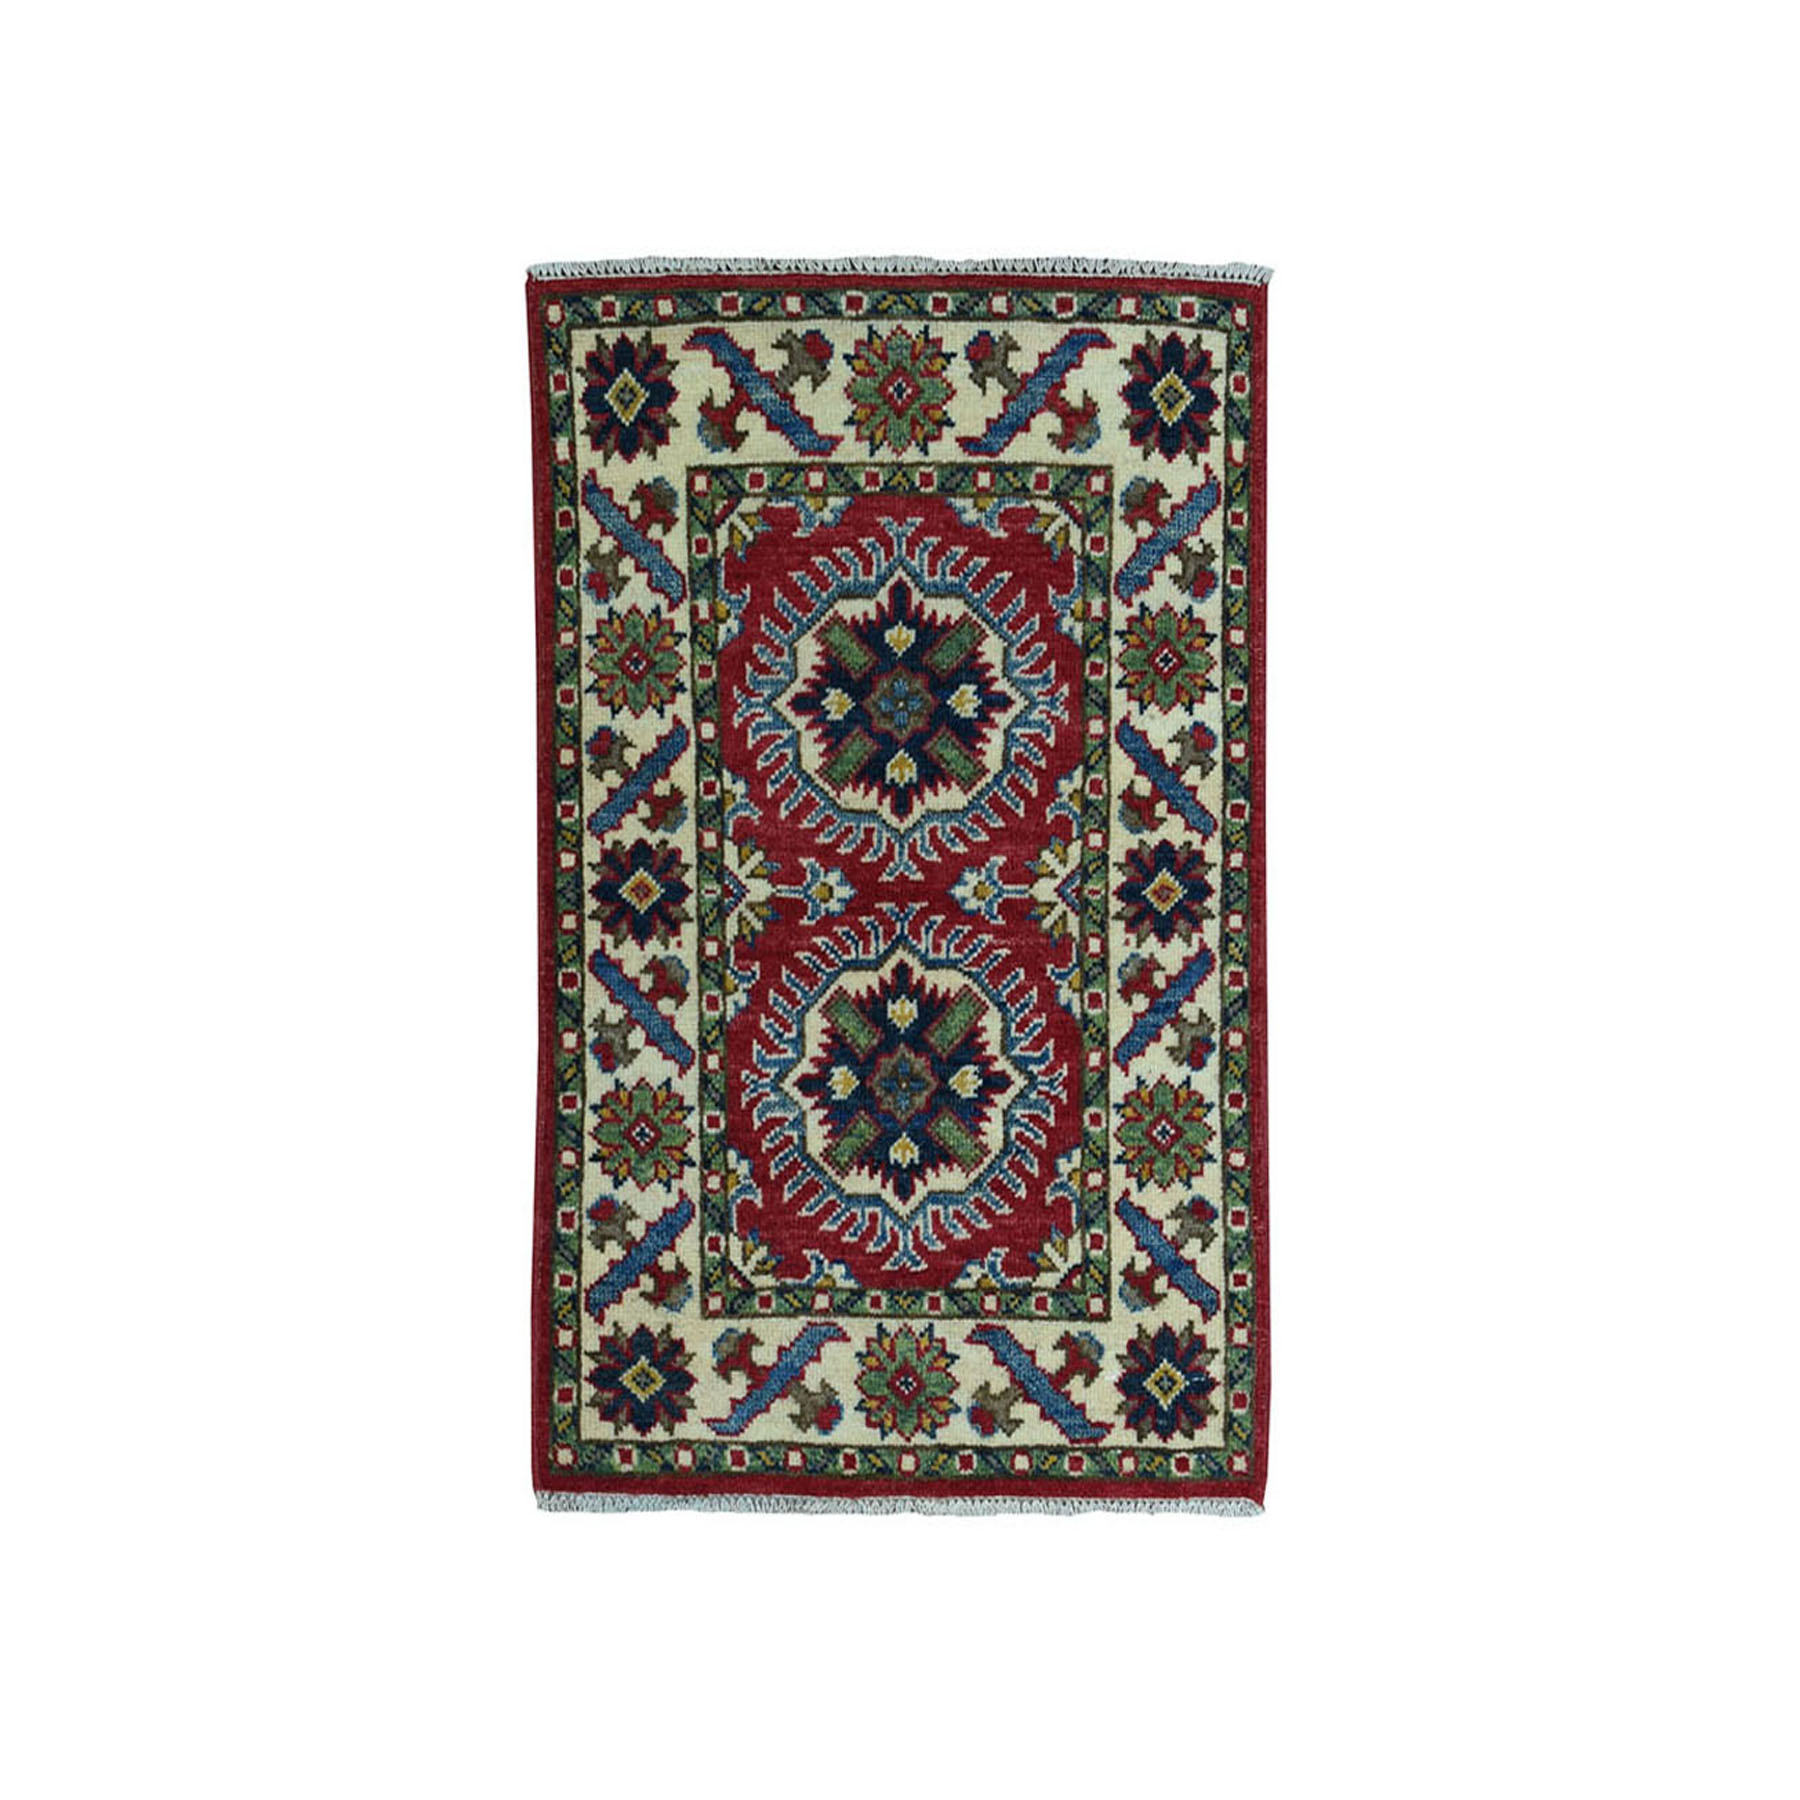 2'X3' Red Kazak Geometric Design Pure Wool Hand-Knotted Oriental Rug moae080d